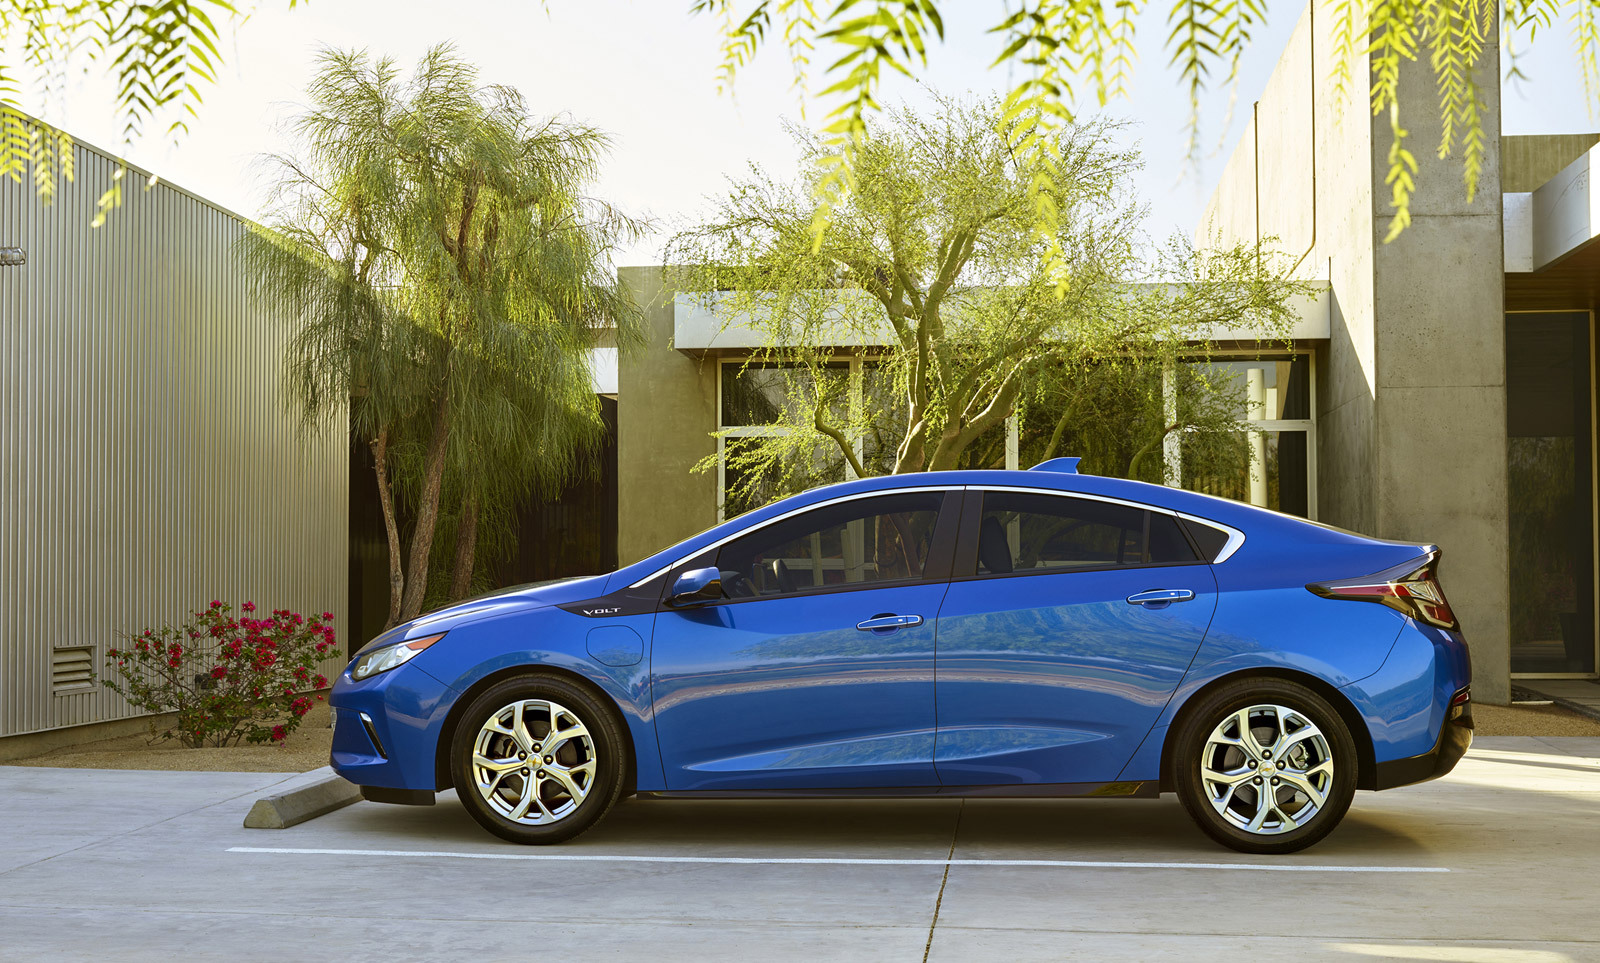 Metallic Blue 2016 Chevrolet Volt